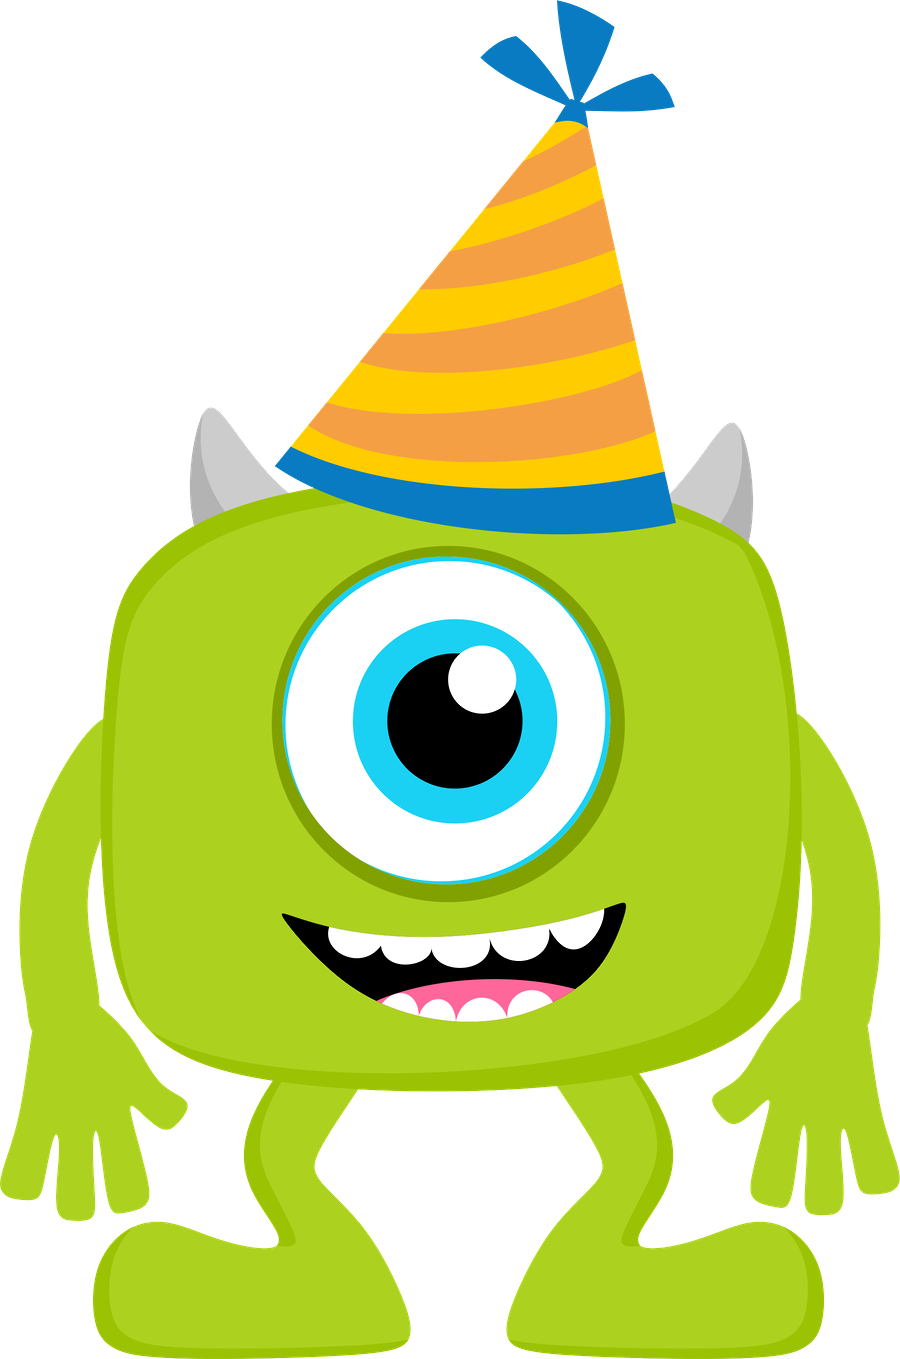 Halloween monster mash clipart picture royalty free library Monstros SA - Minus | jackson's 1st birthday | Pinterest | Monsters ... picture royalty free library